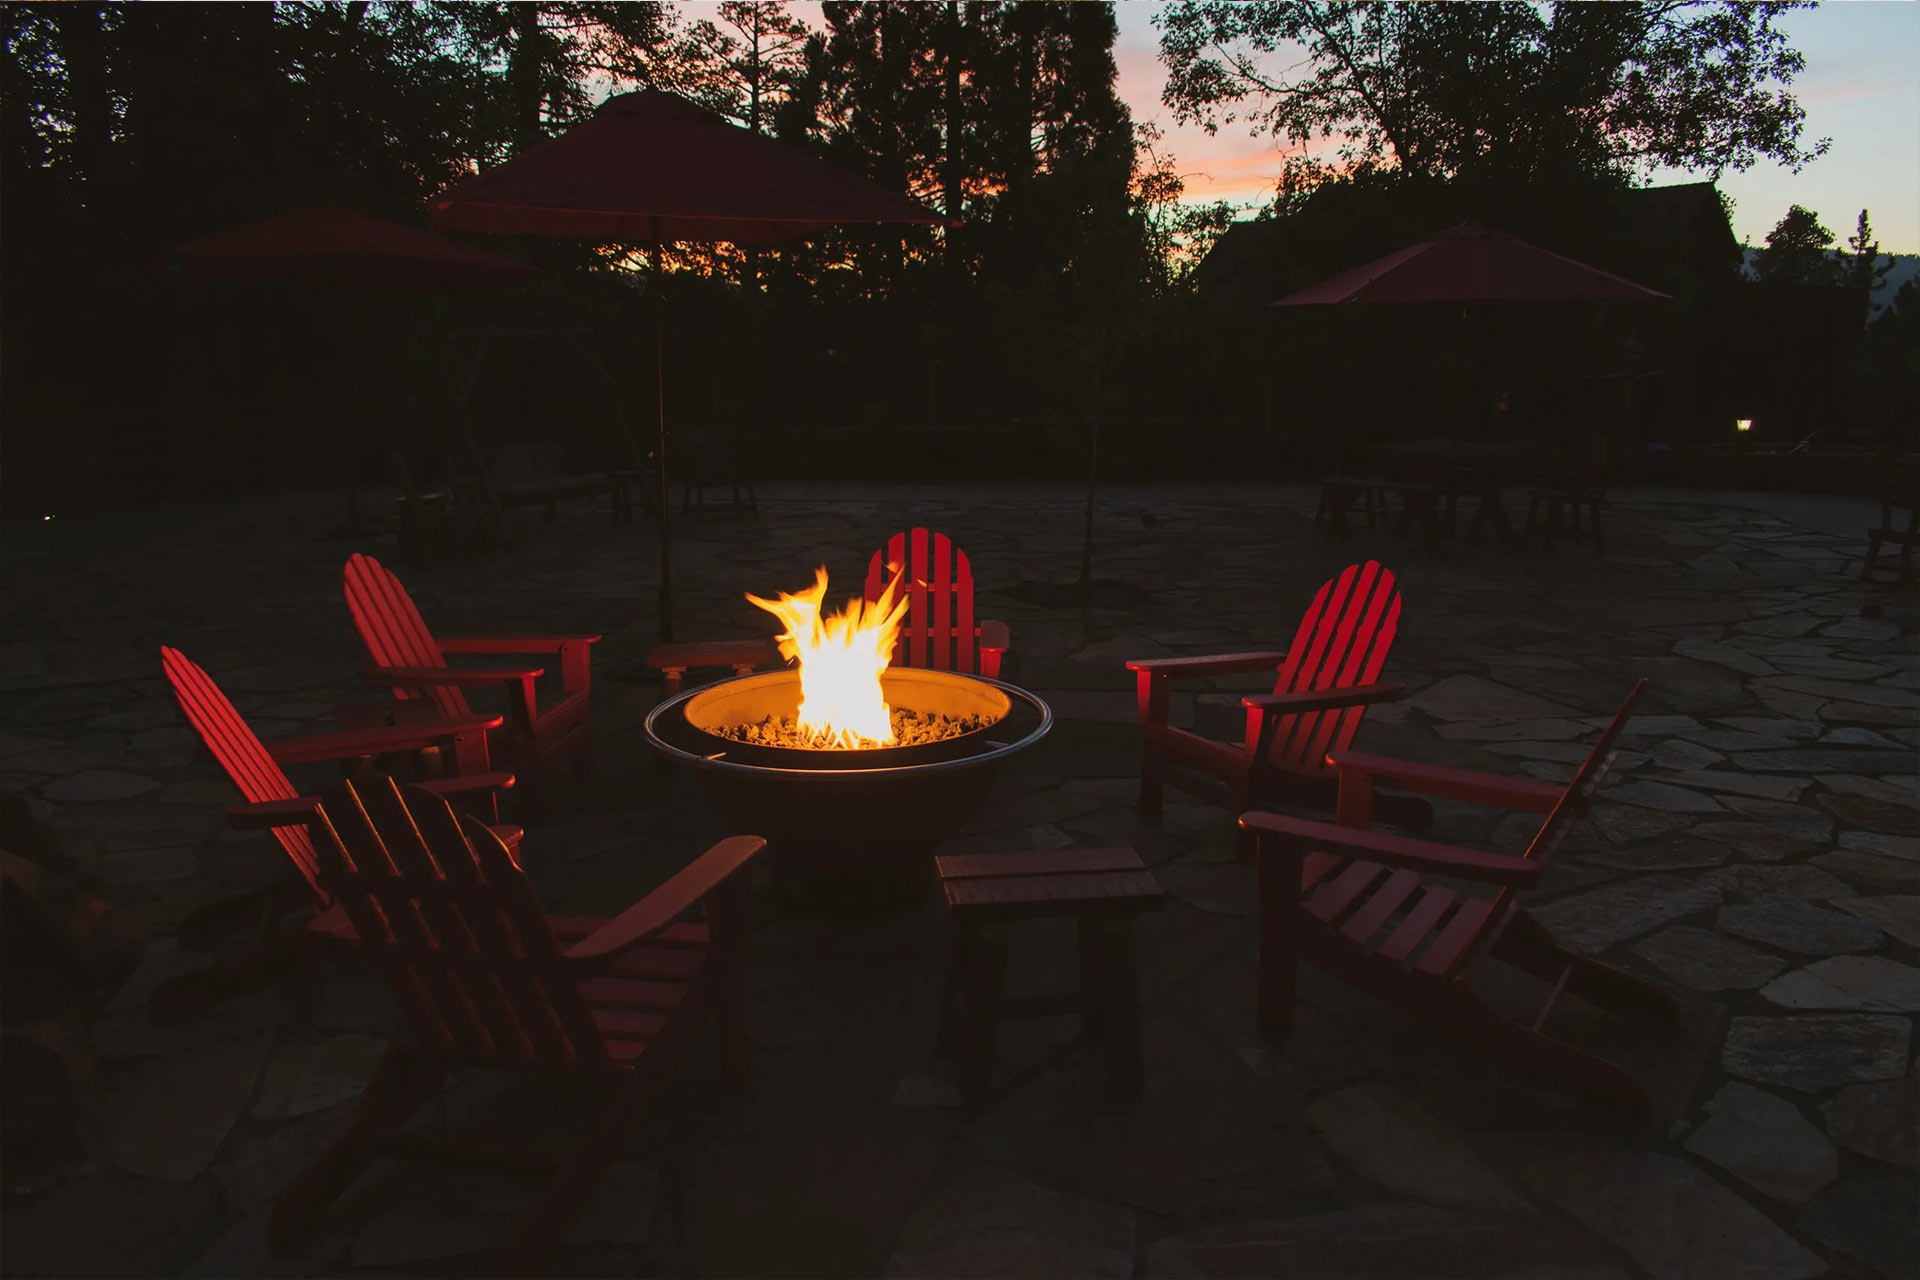 Fire pit in the courtyard with the sun setting